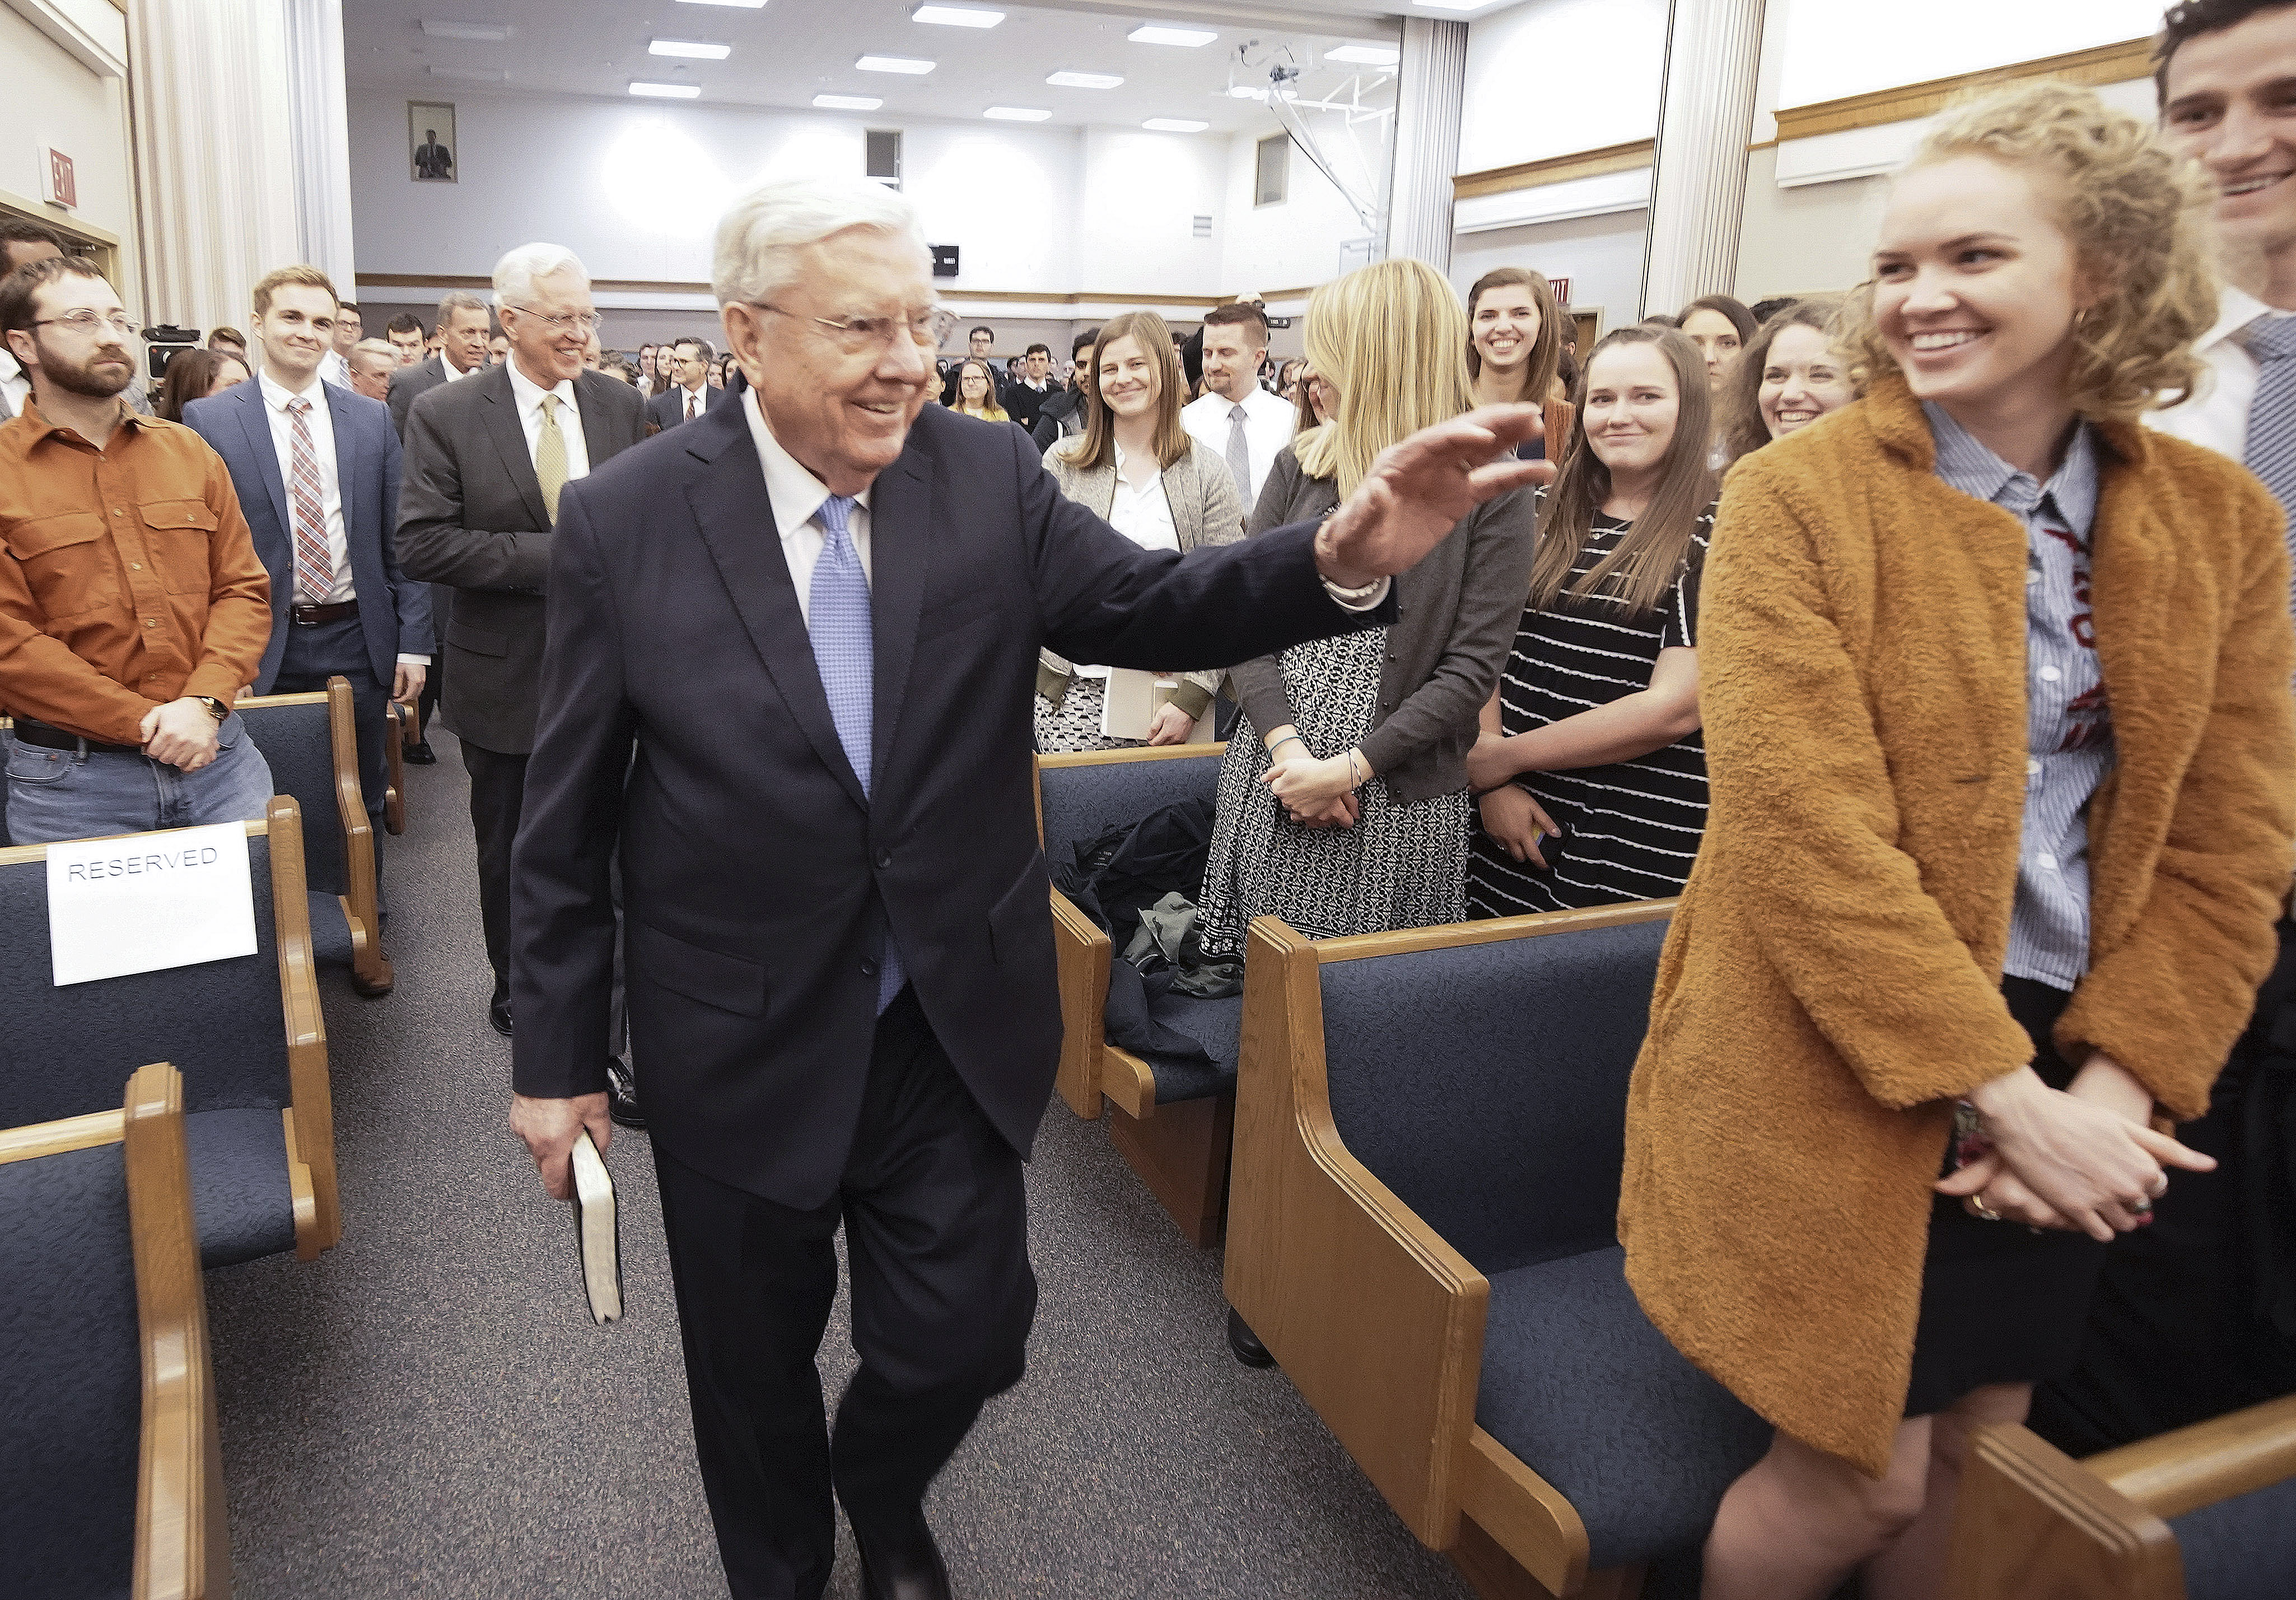 President M. Russell Ballard, acting president of the Quorum of the Twelve Apostles of The Church of Jesus Christ of Latter-day Saints, waves to attendees upon entering the stake center in Boston on Saturday, Oct. 19, 2019.